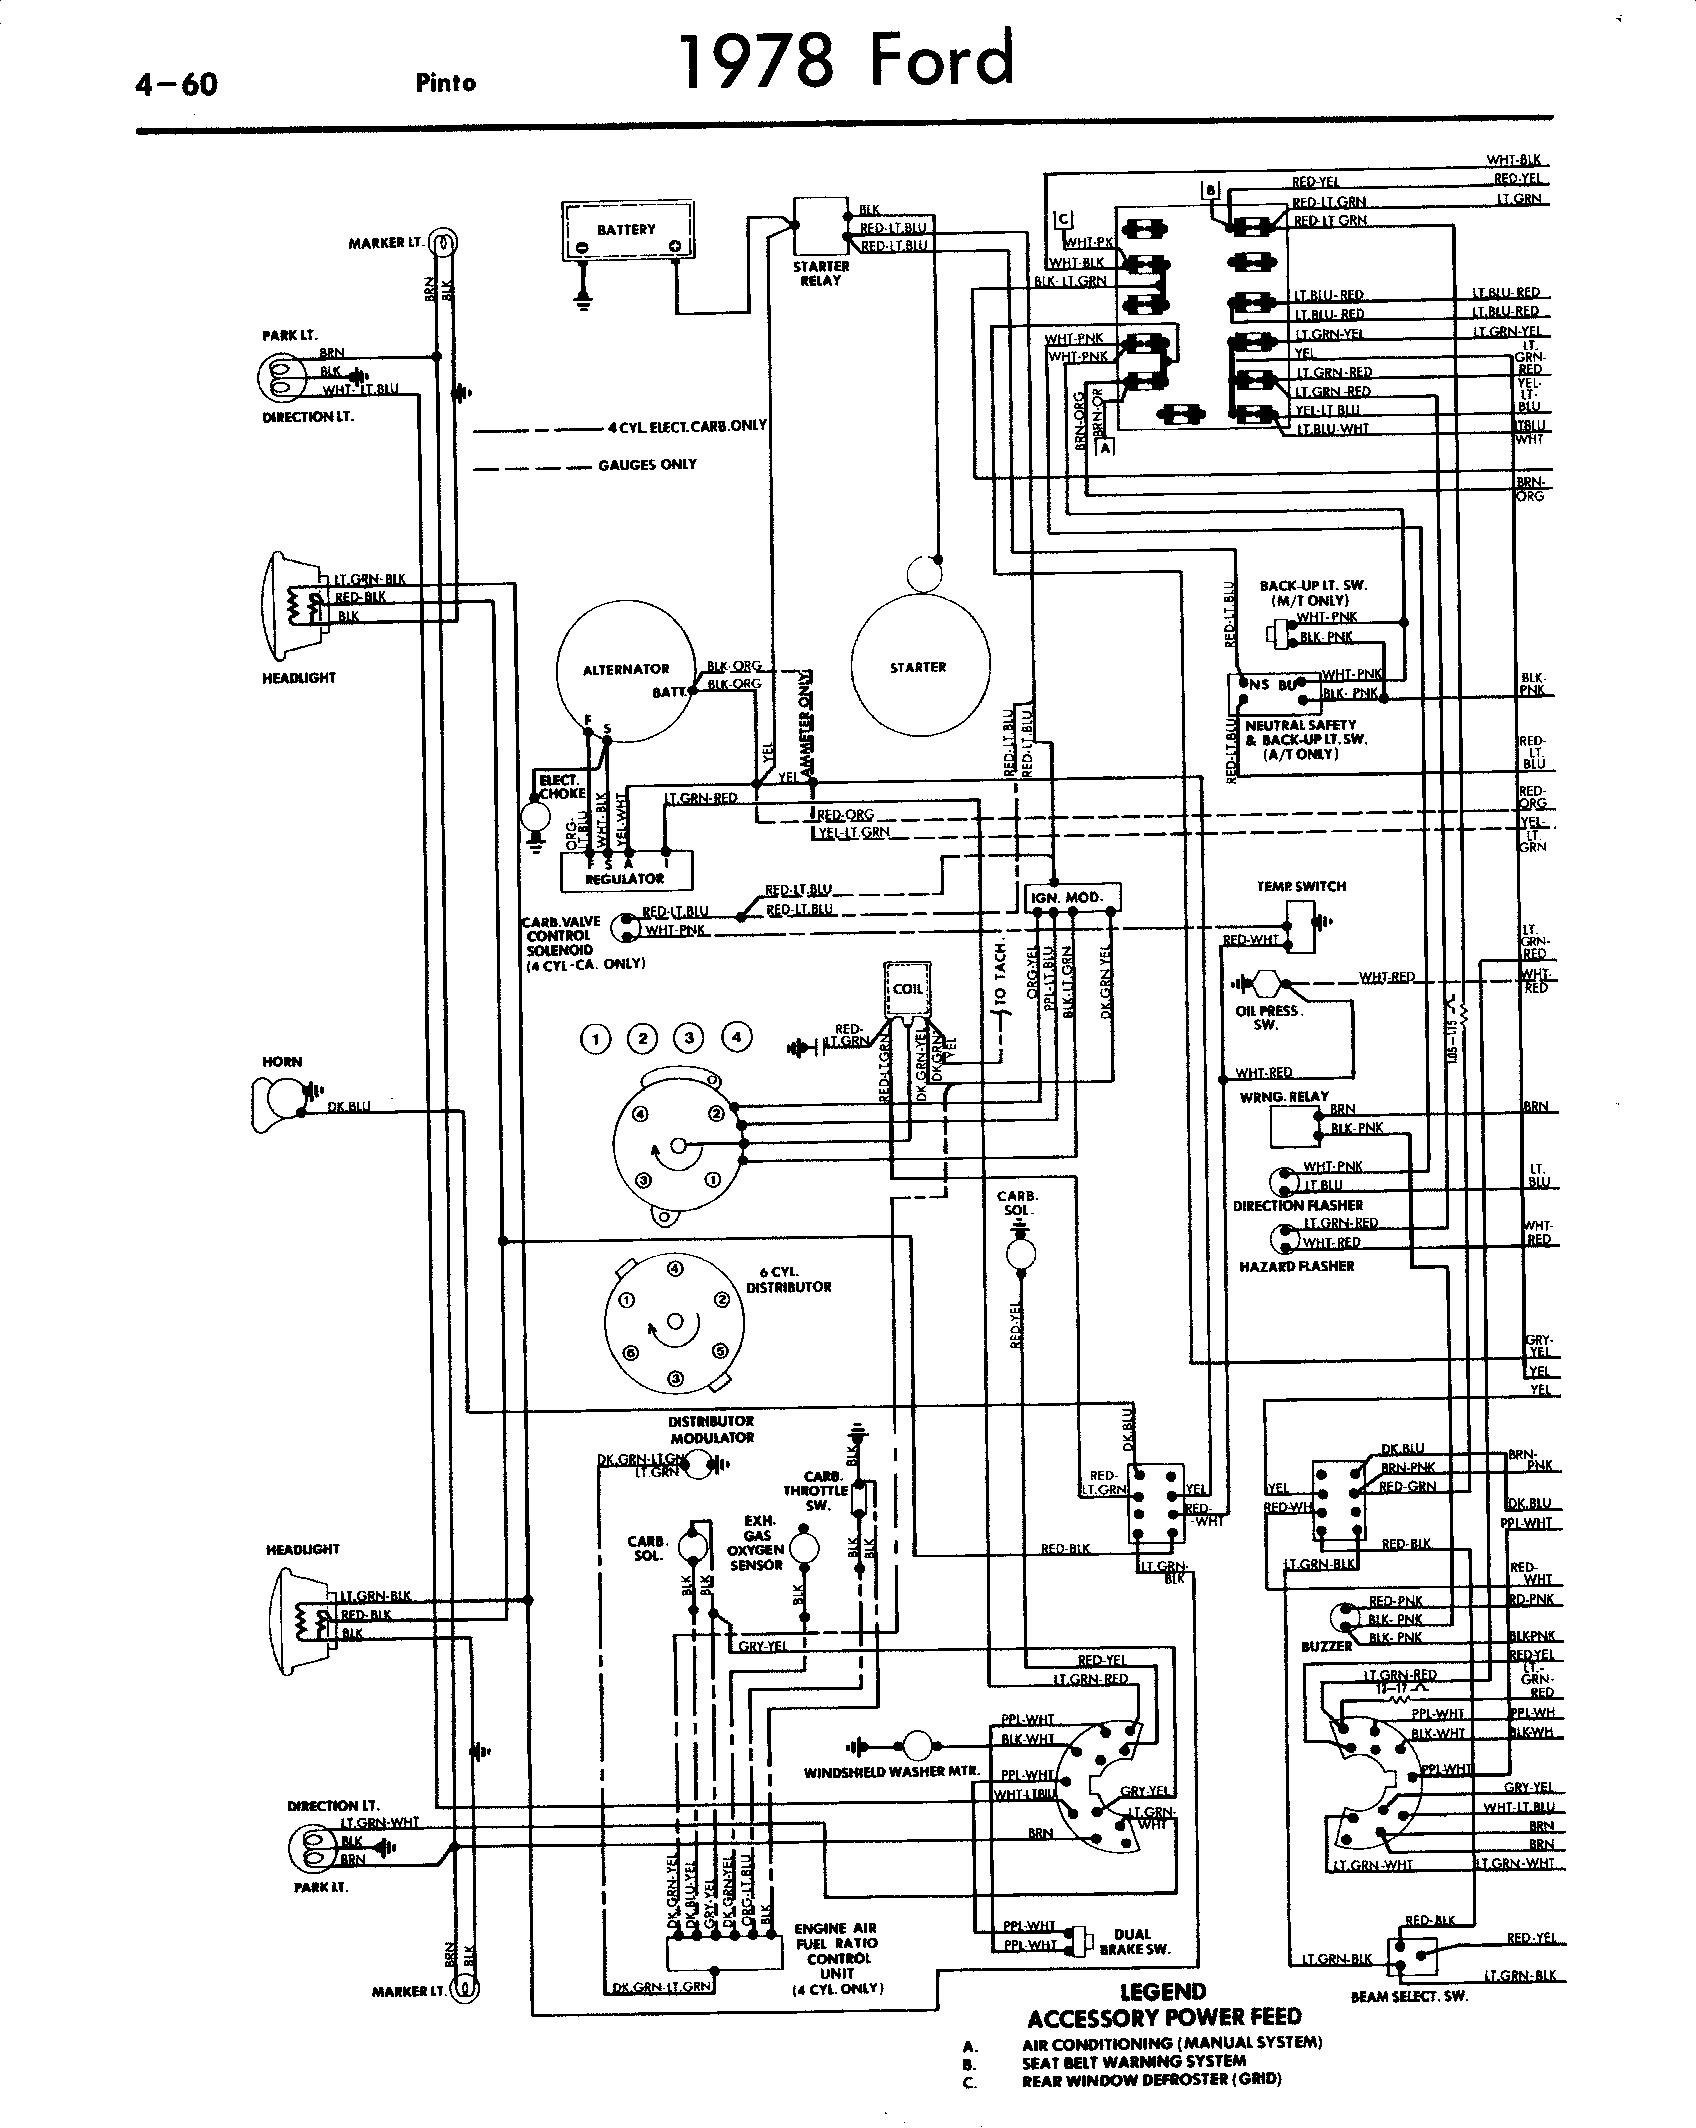 Ford 5 4 L Engine Diagram 2 My Wiring Diagram